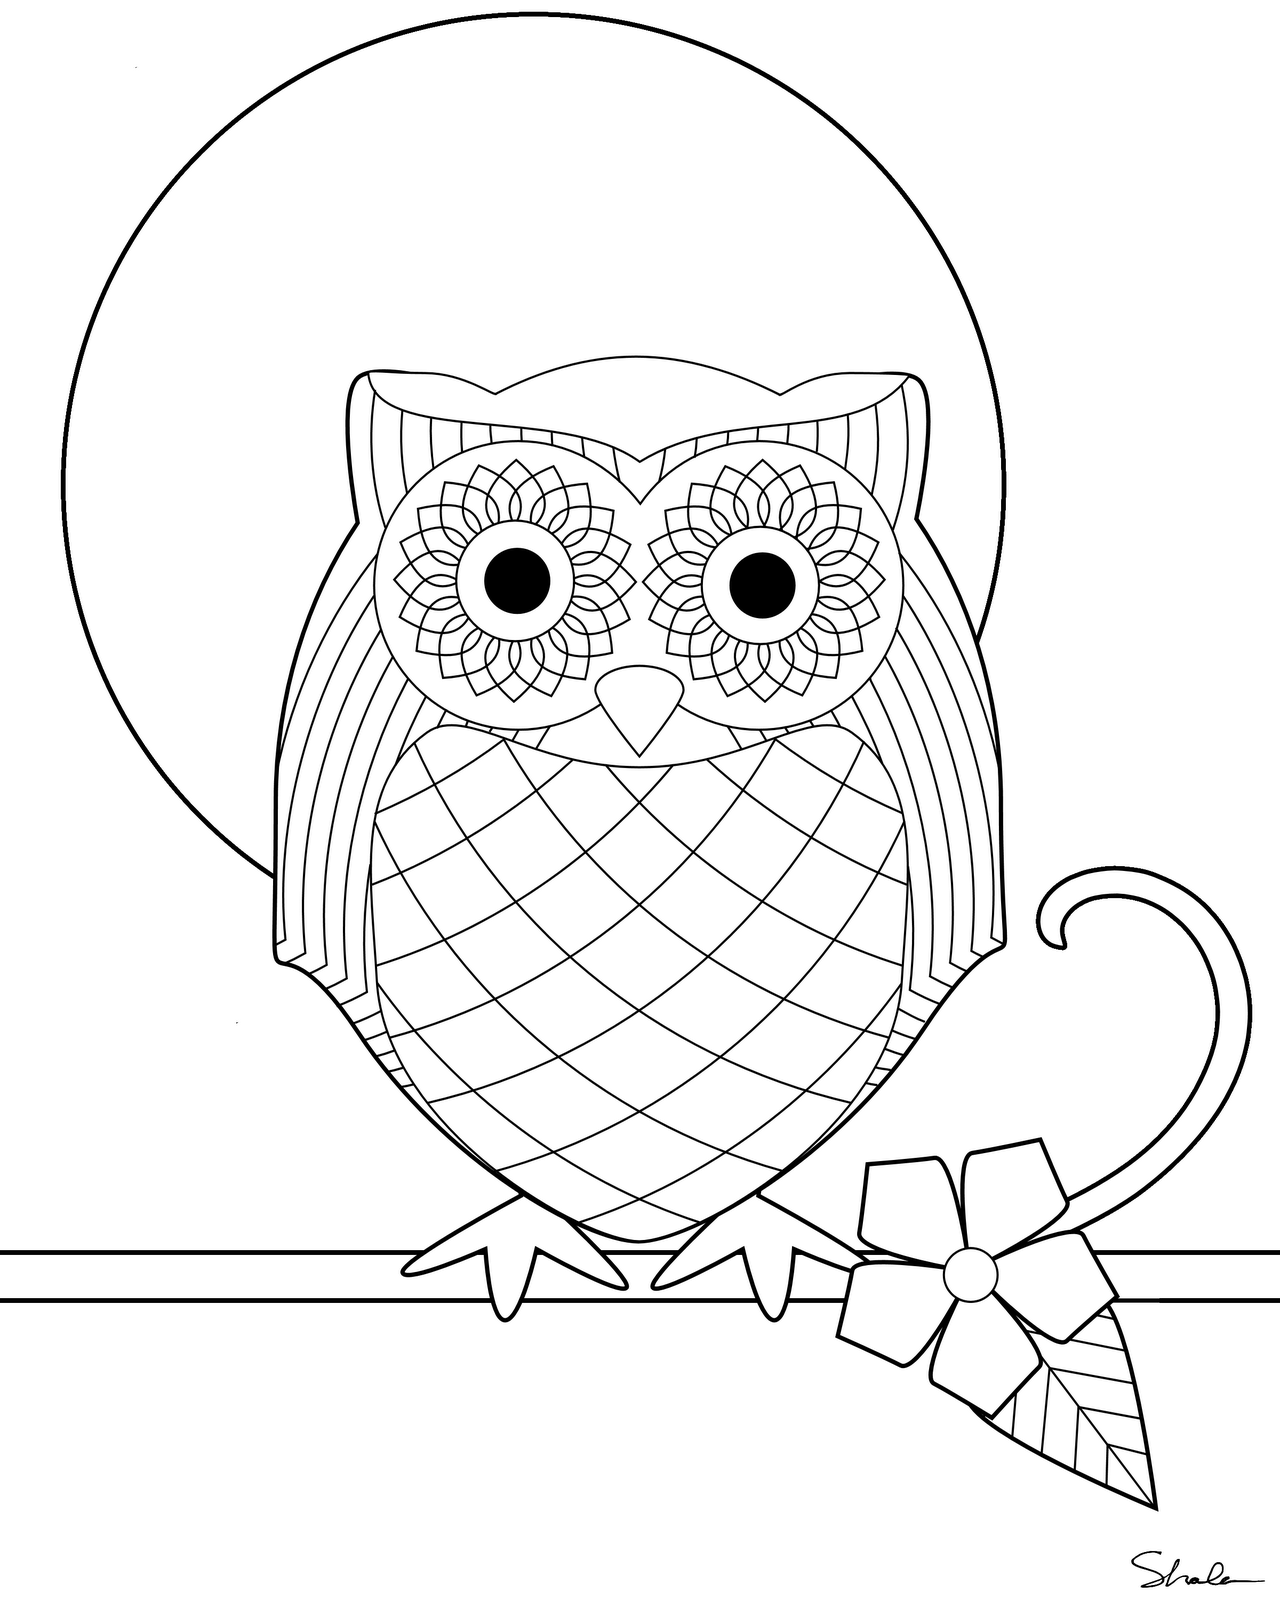 Pictures to color in - Awesome Owl To Print Out For The Kiddos To Color At A Origami Owl Jewelry Bar